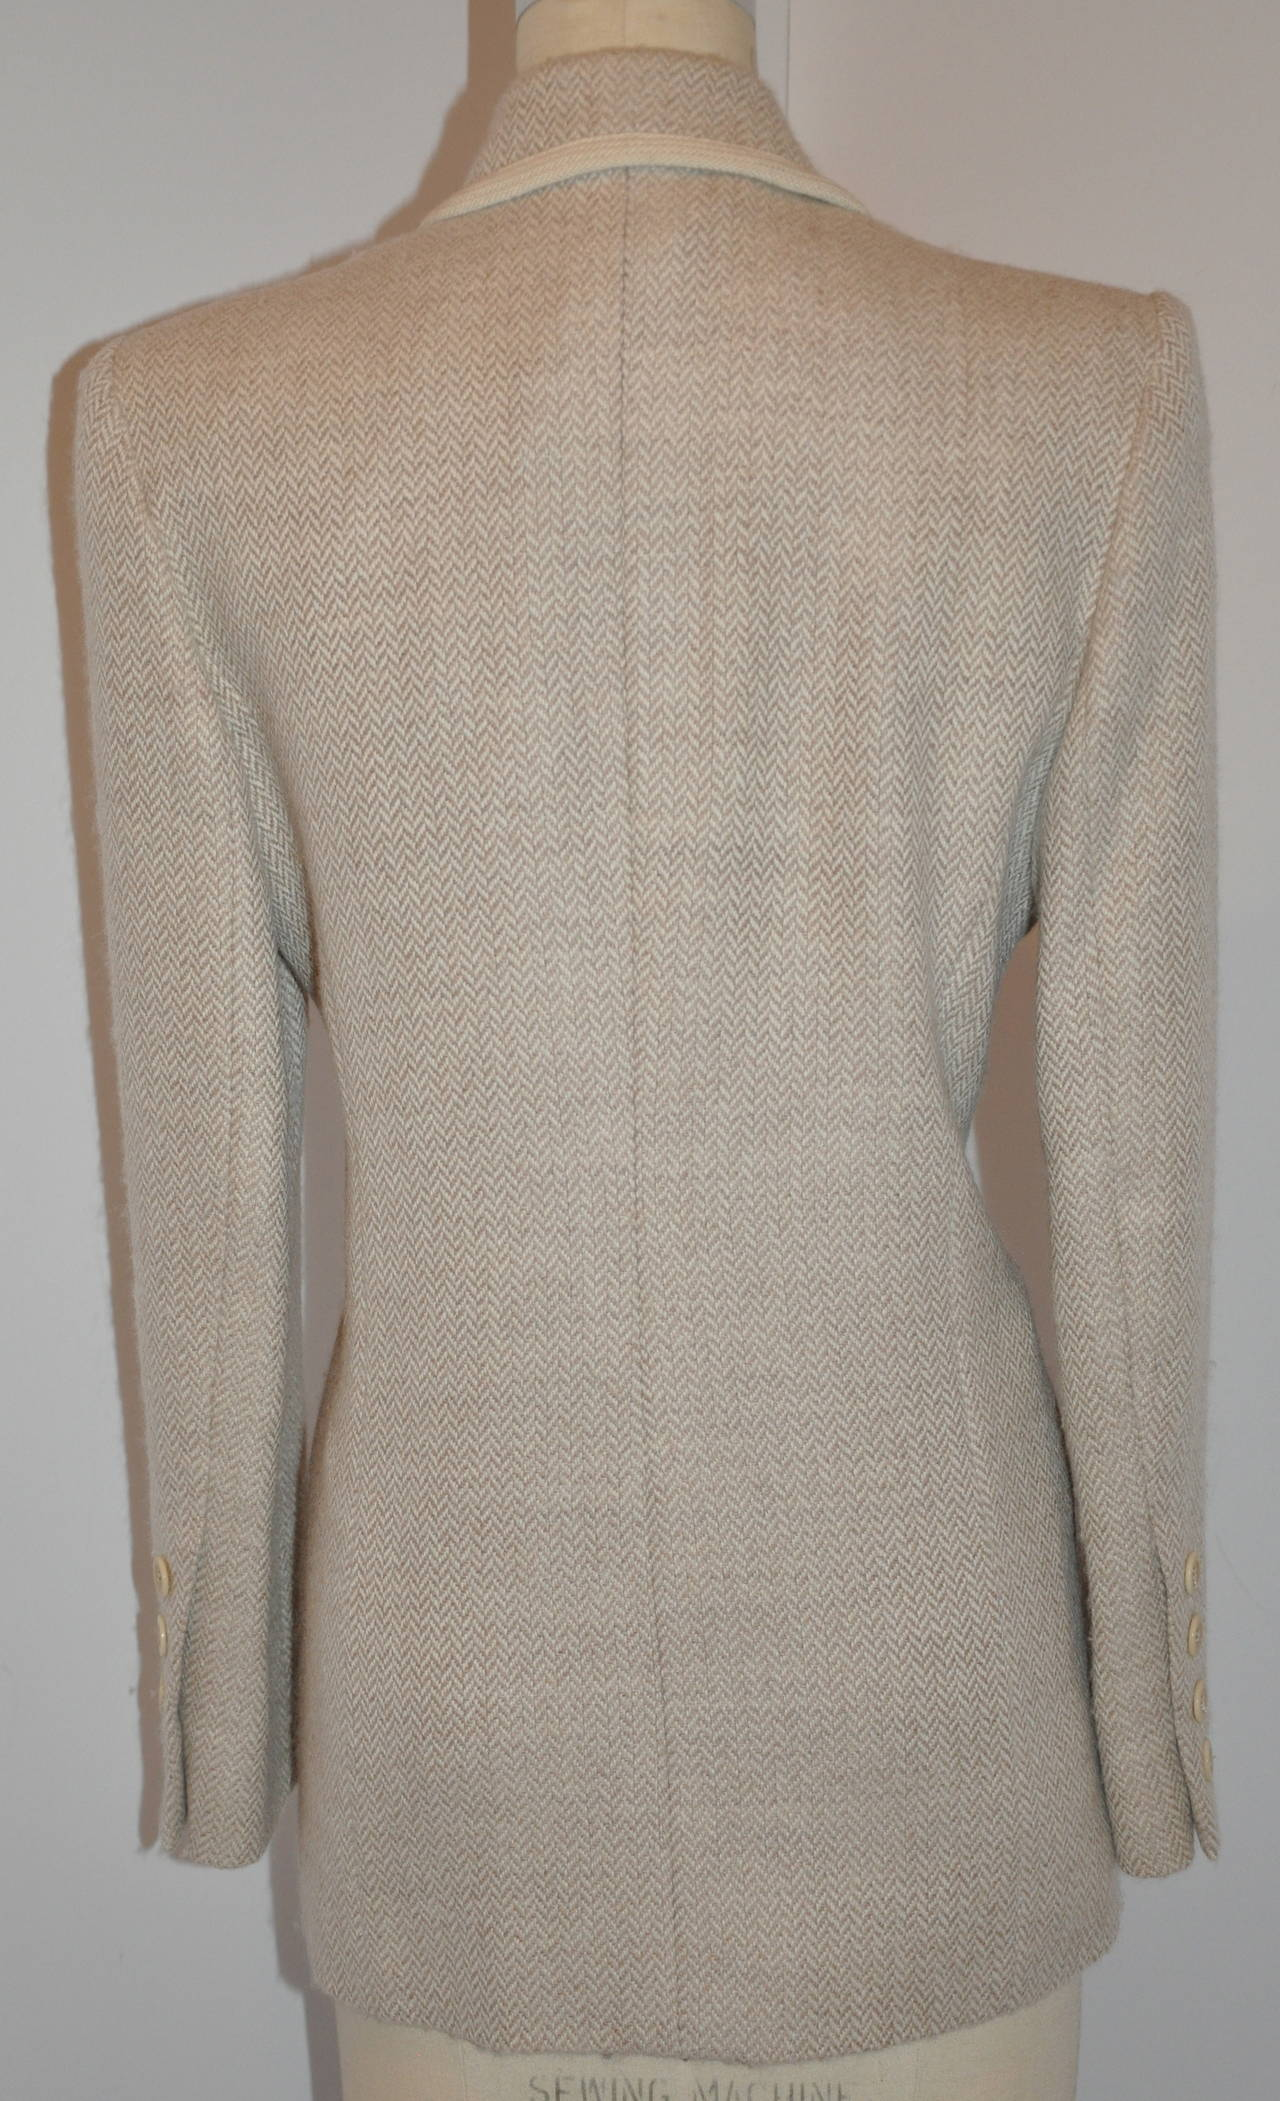 Ines de la Fressange wonderful blend of lambwool and angora in shades of creams is sized 40/French.    The shoulders measures 16